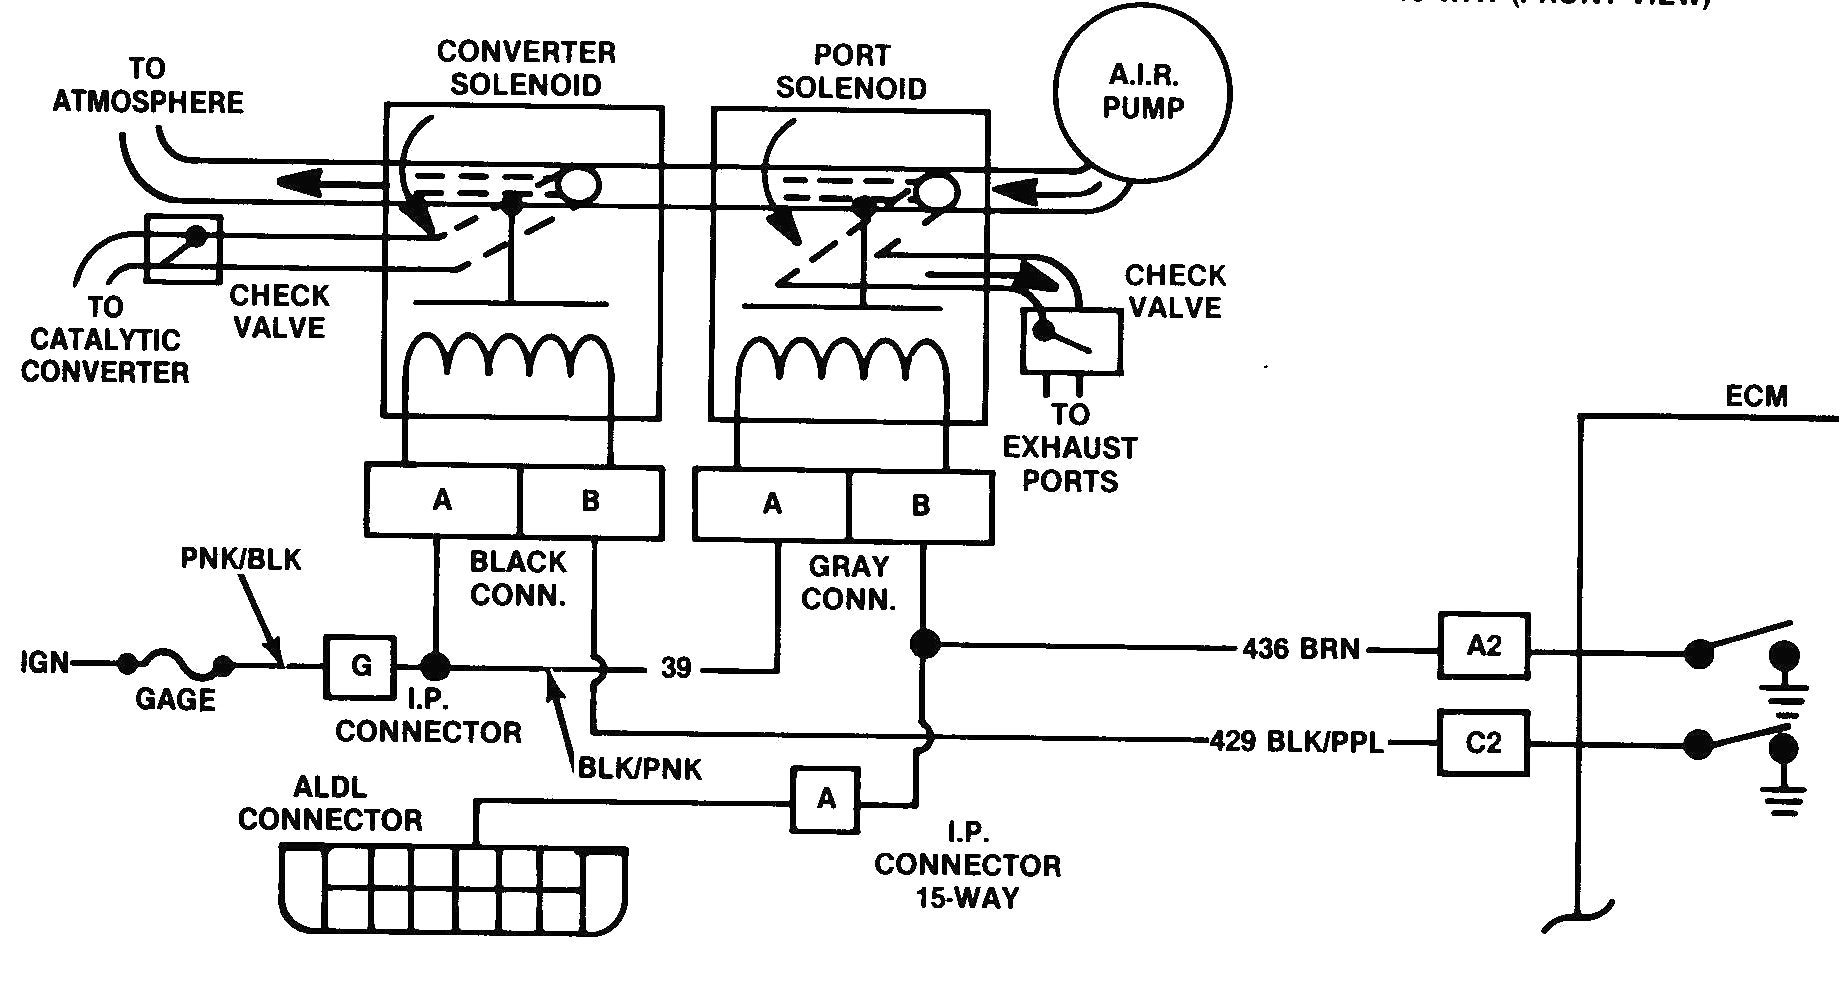 honeywell gas valve wiring diagram Download-Gas solenoid Valve Wiring Diagram Elegant Honeywell Gas Valve Troubleshooting Gallery Free Troubleshooting 6-p